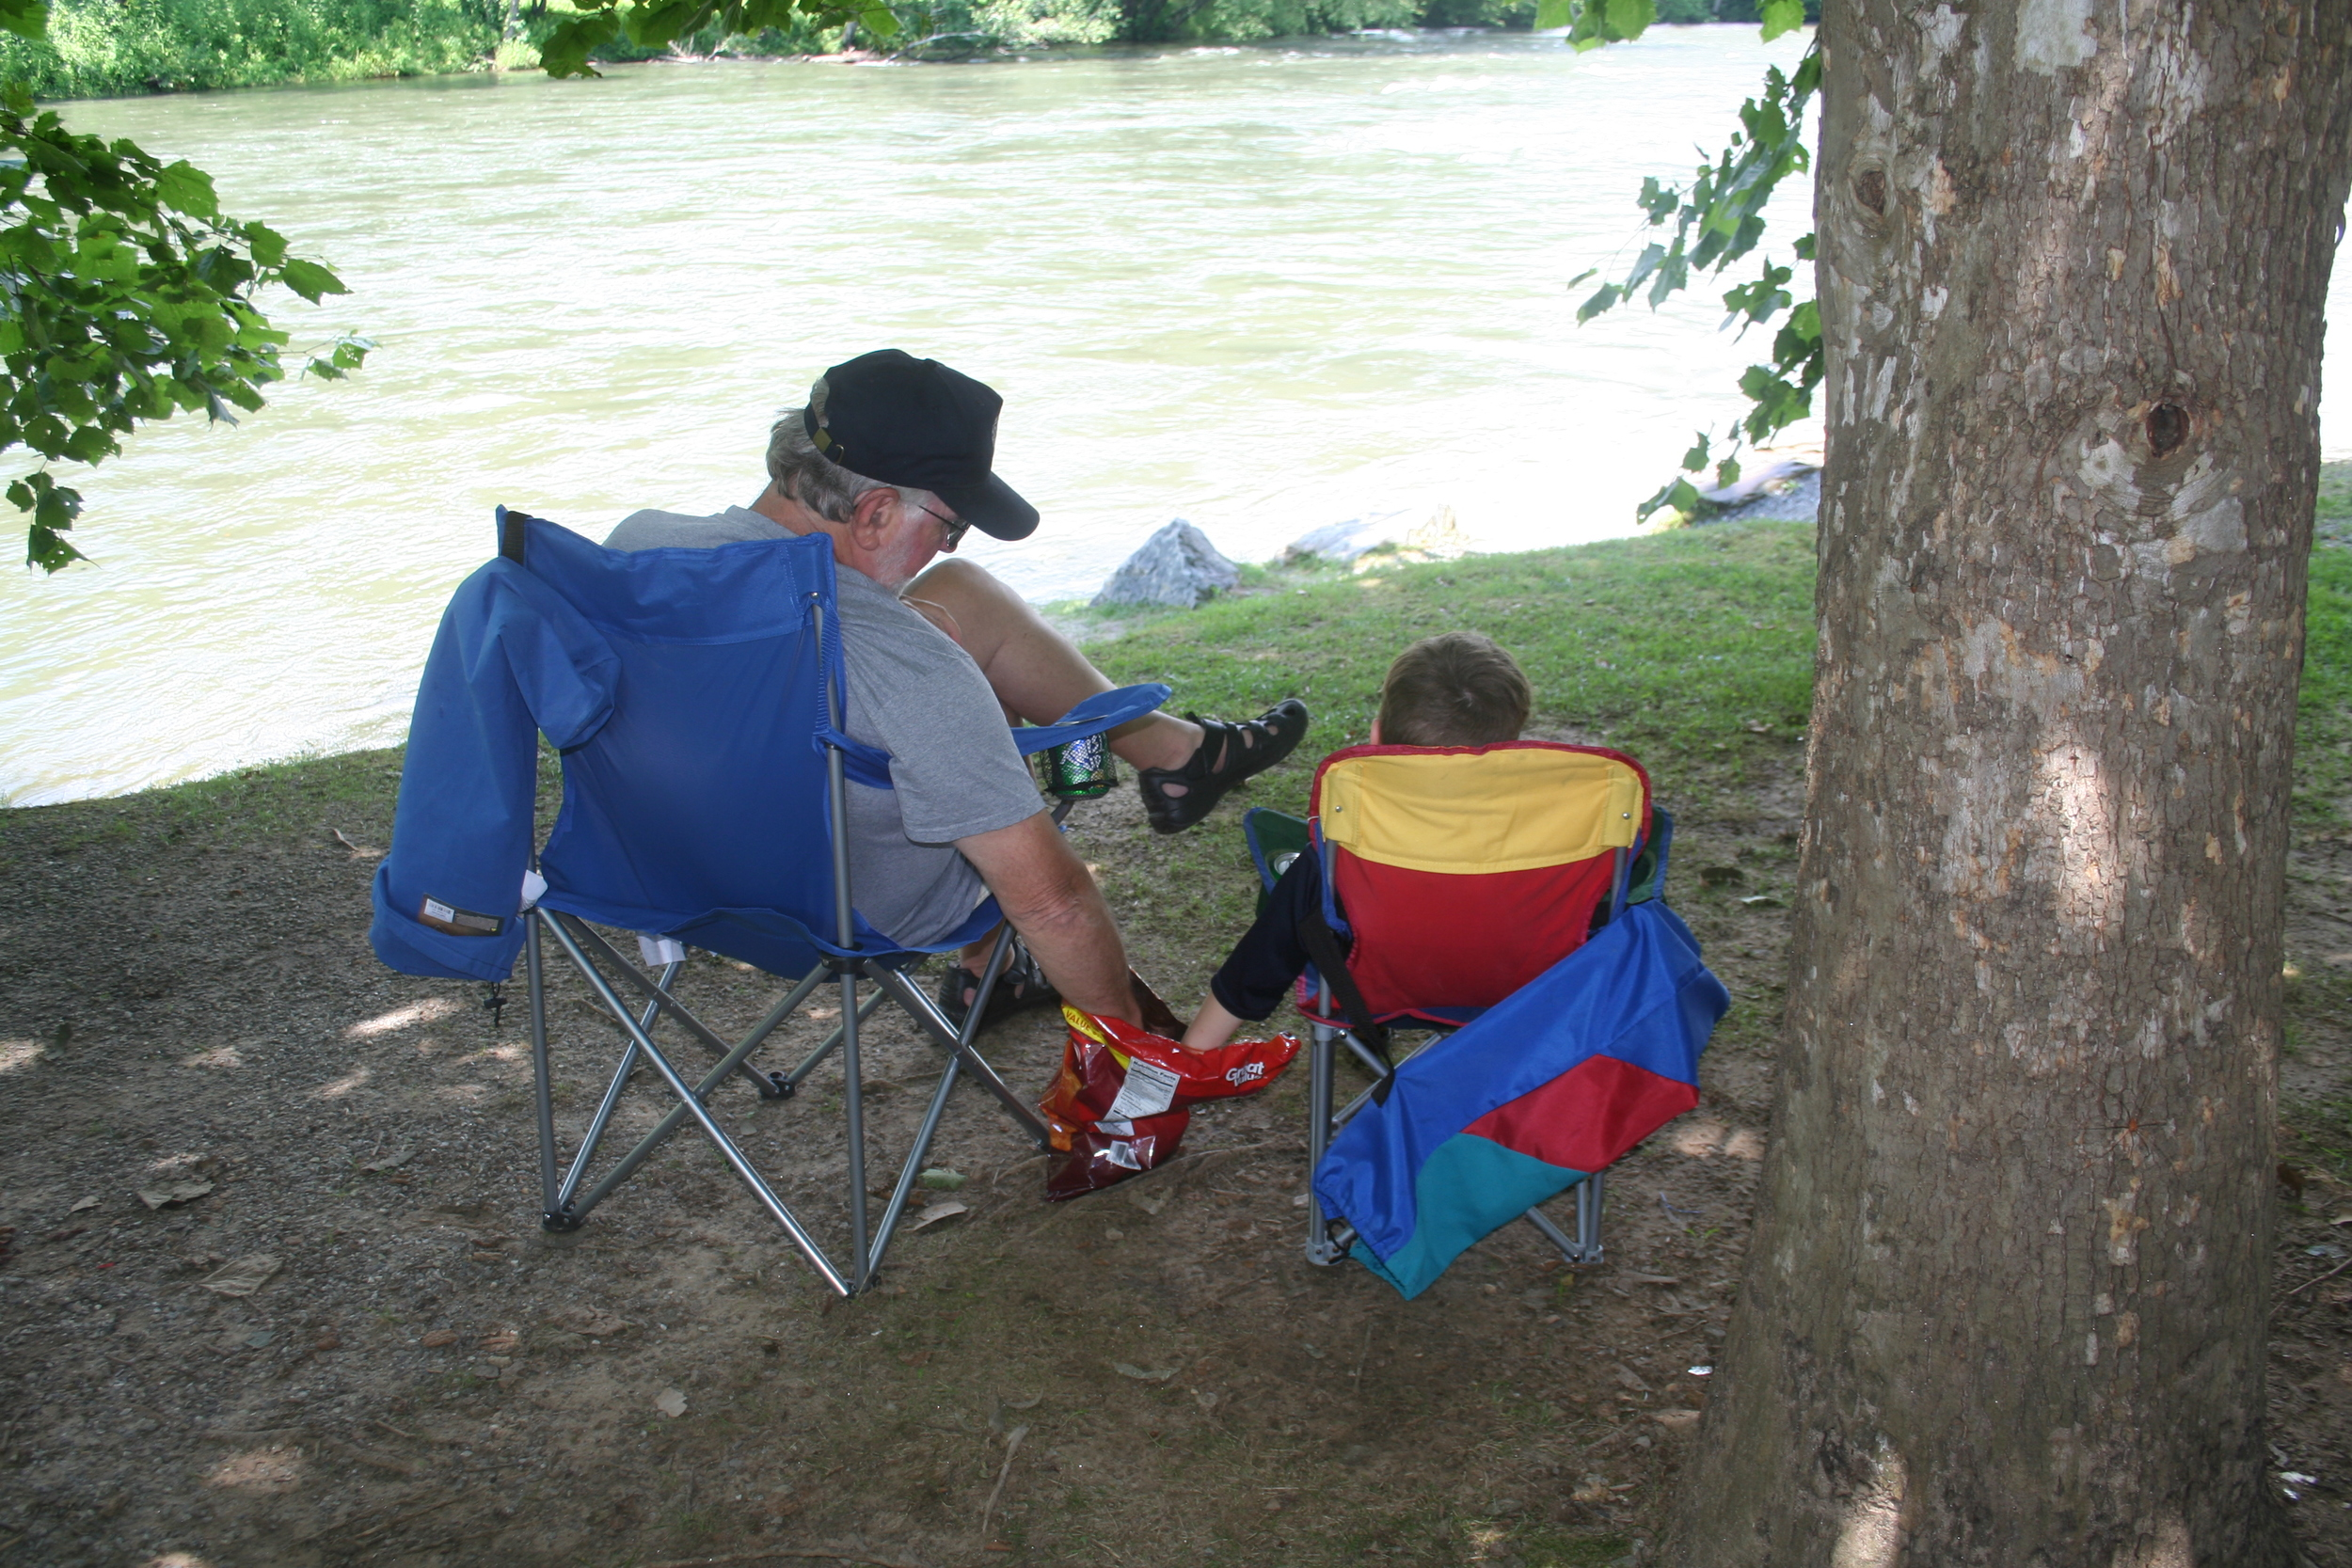 Carl and Dewey share chips at the river.